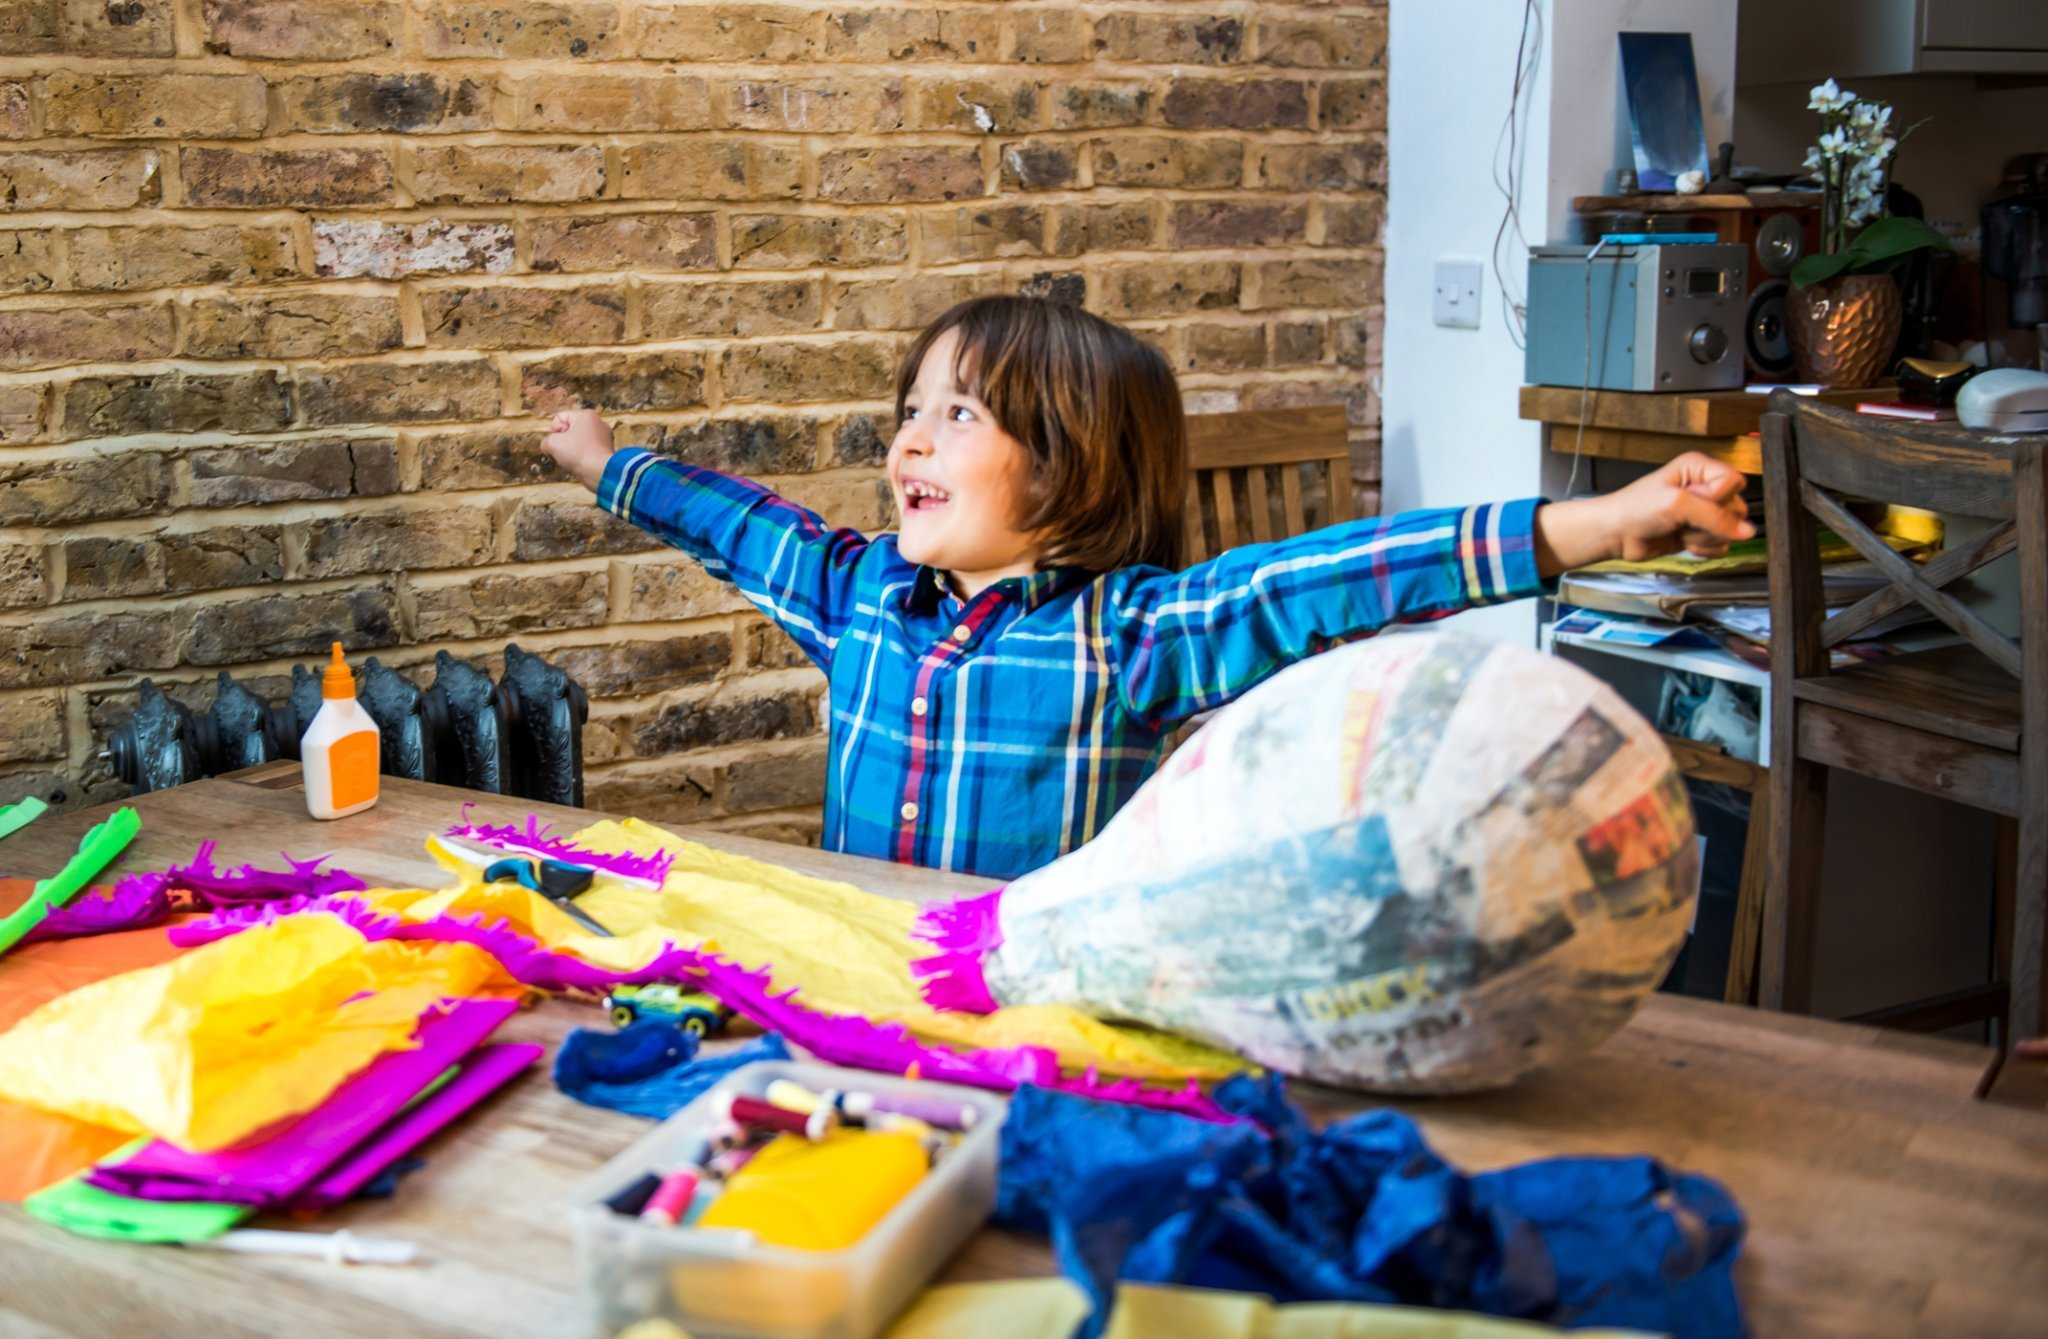 8 Easy Kids Crafts Every Parent Should Know